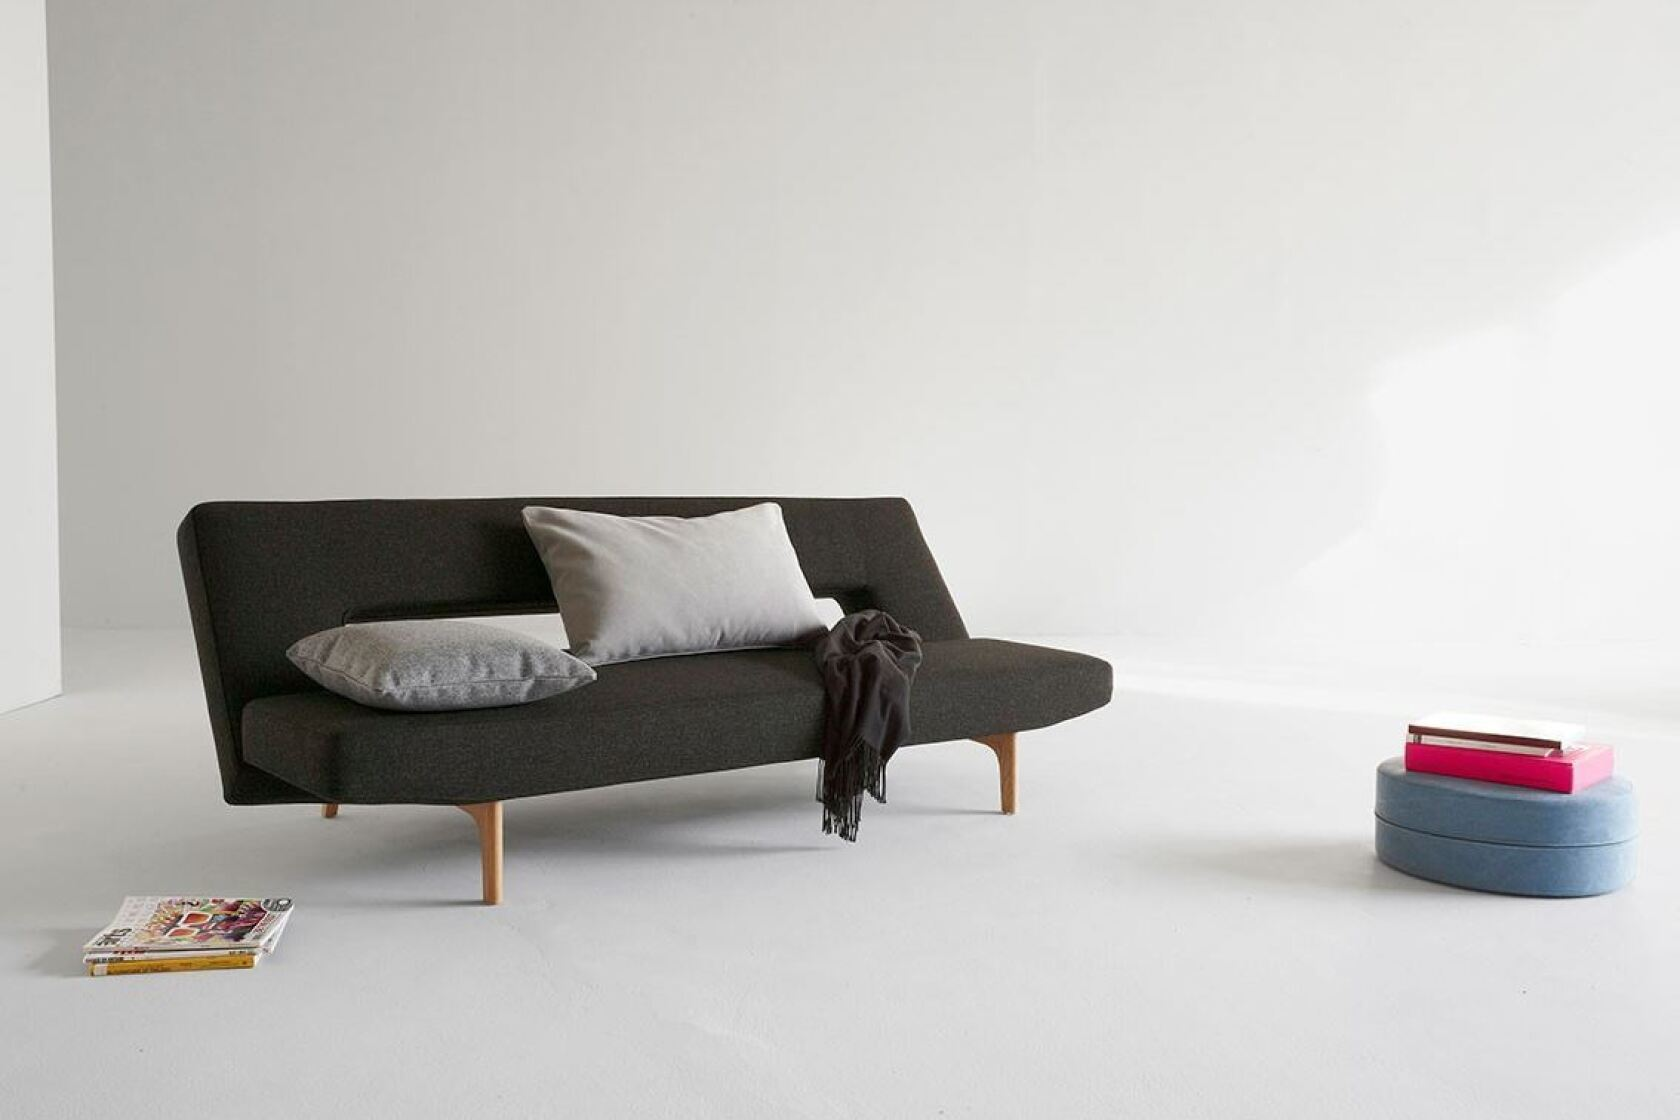 half off 001a7 7e312 11 stylish sleeper sofas that are easy on the eyes -- and ...